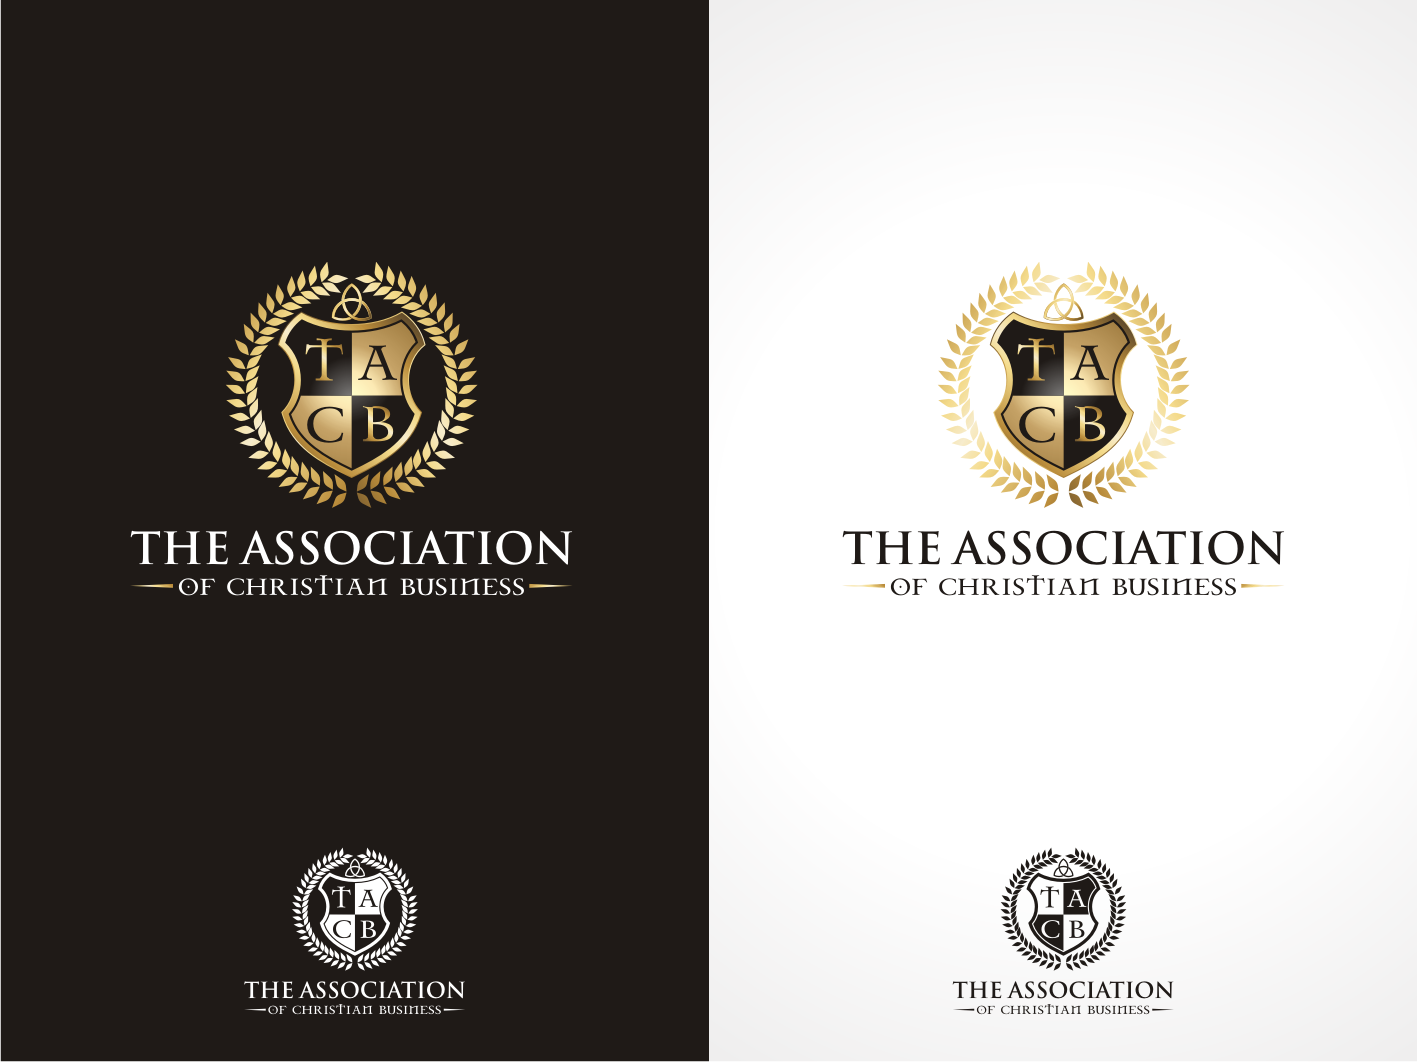 Help The Association of Christian Business with a new logo